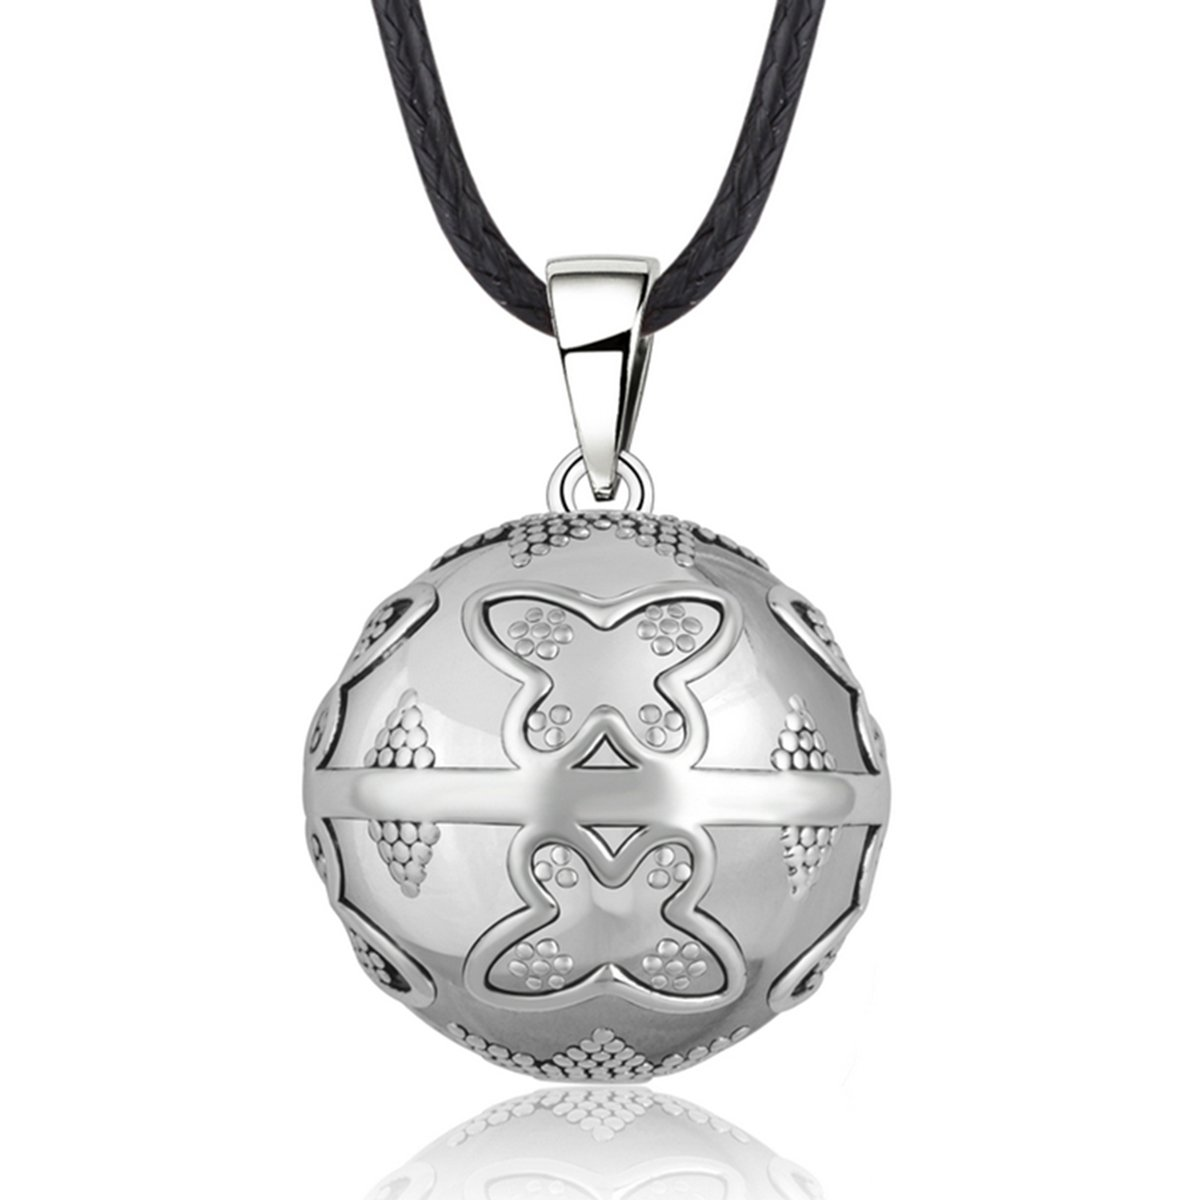 EUDORA Harmony Bola Necklace butterfly Chime Pendant Musical Bola, 30'' Rope & Pregnancy 45'' Cord